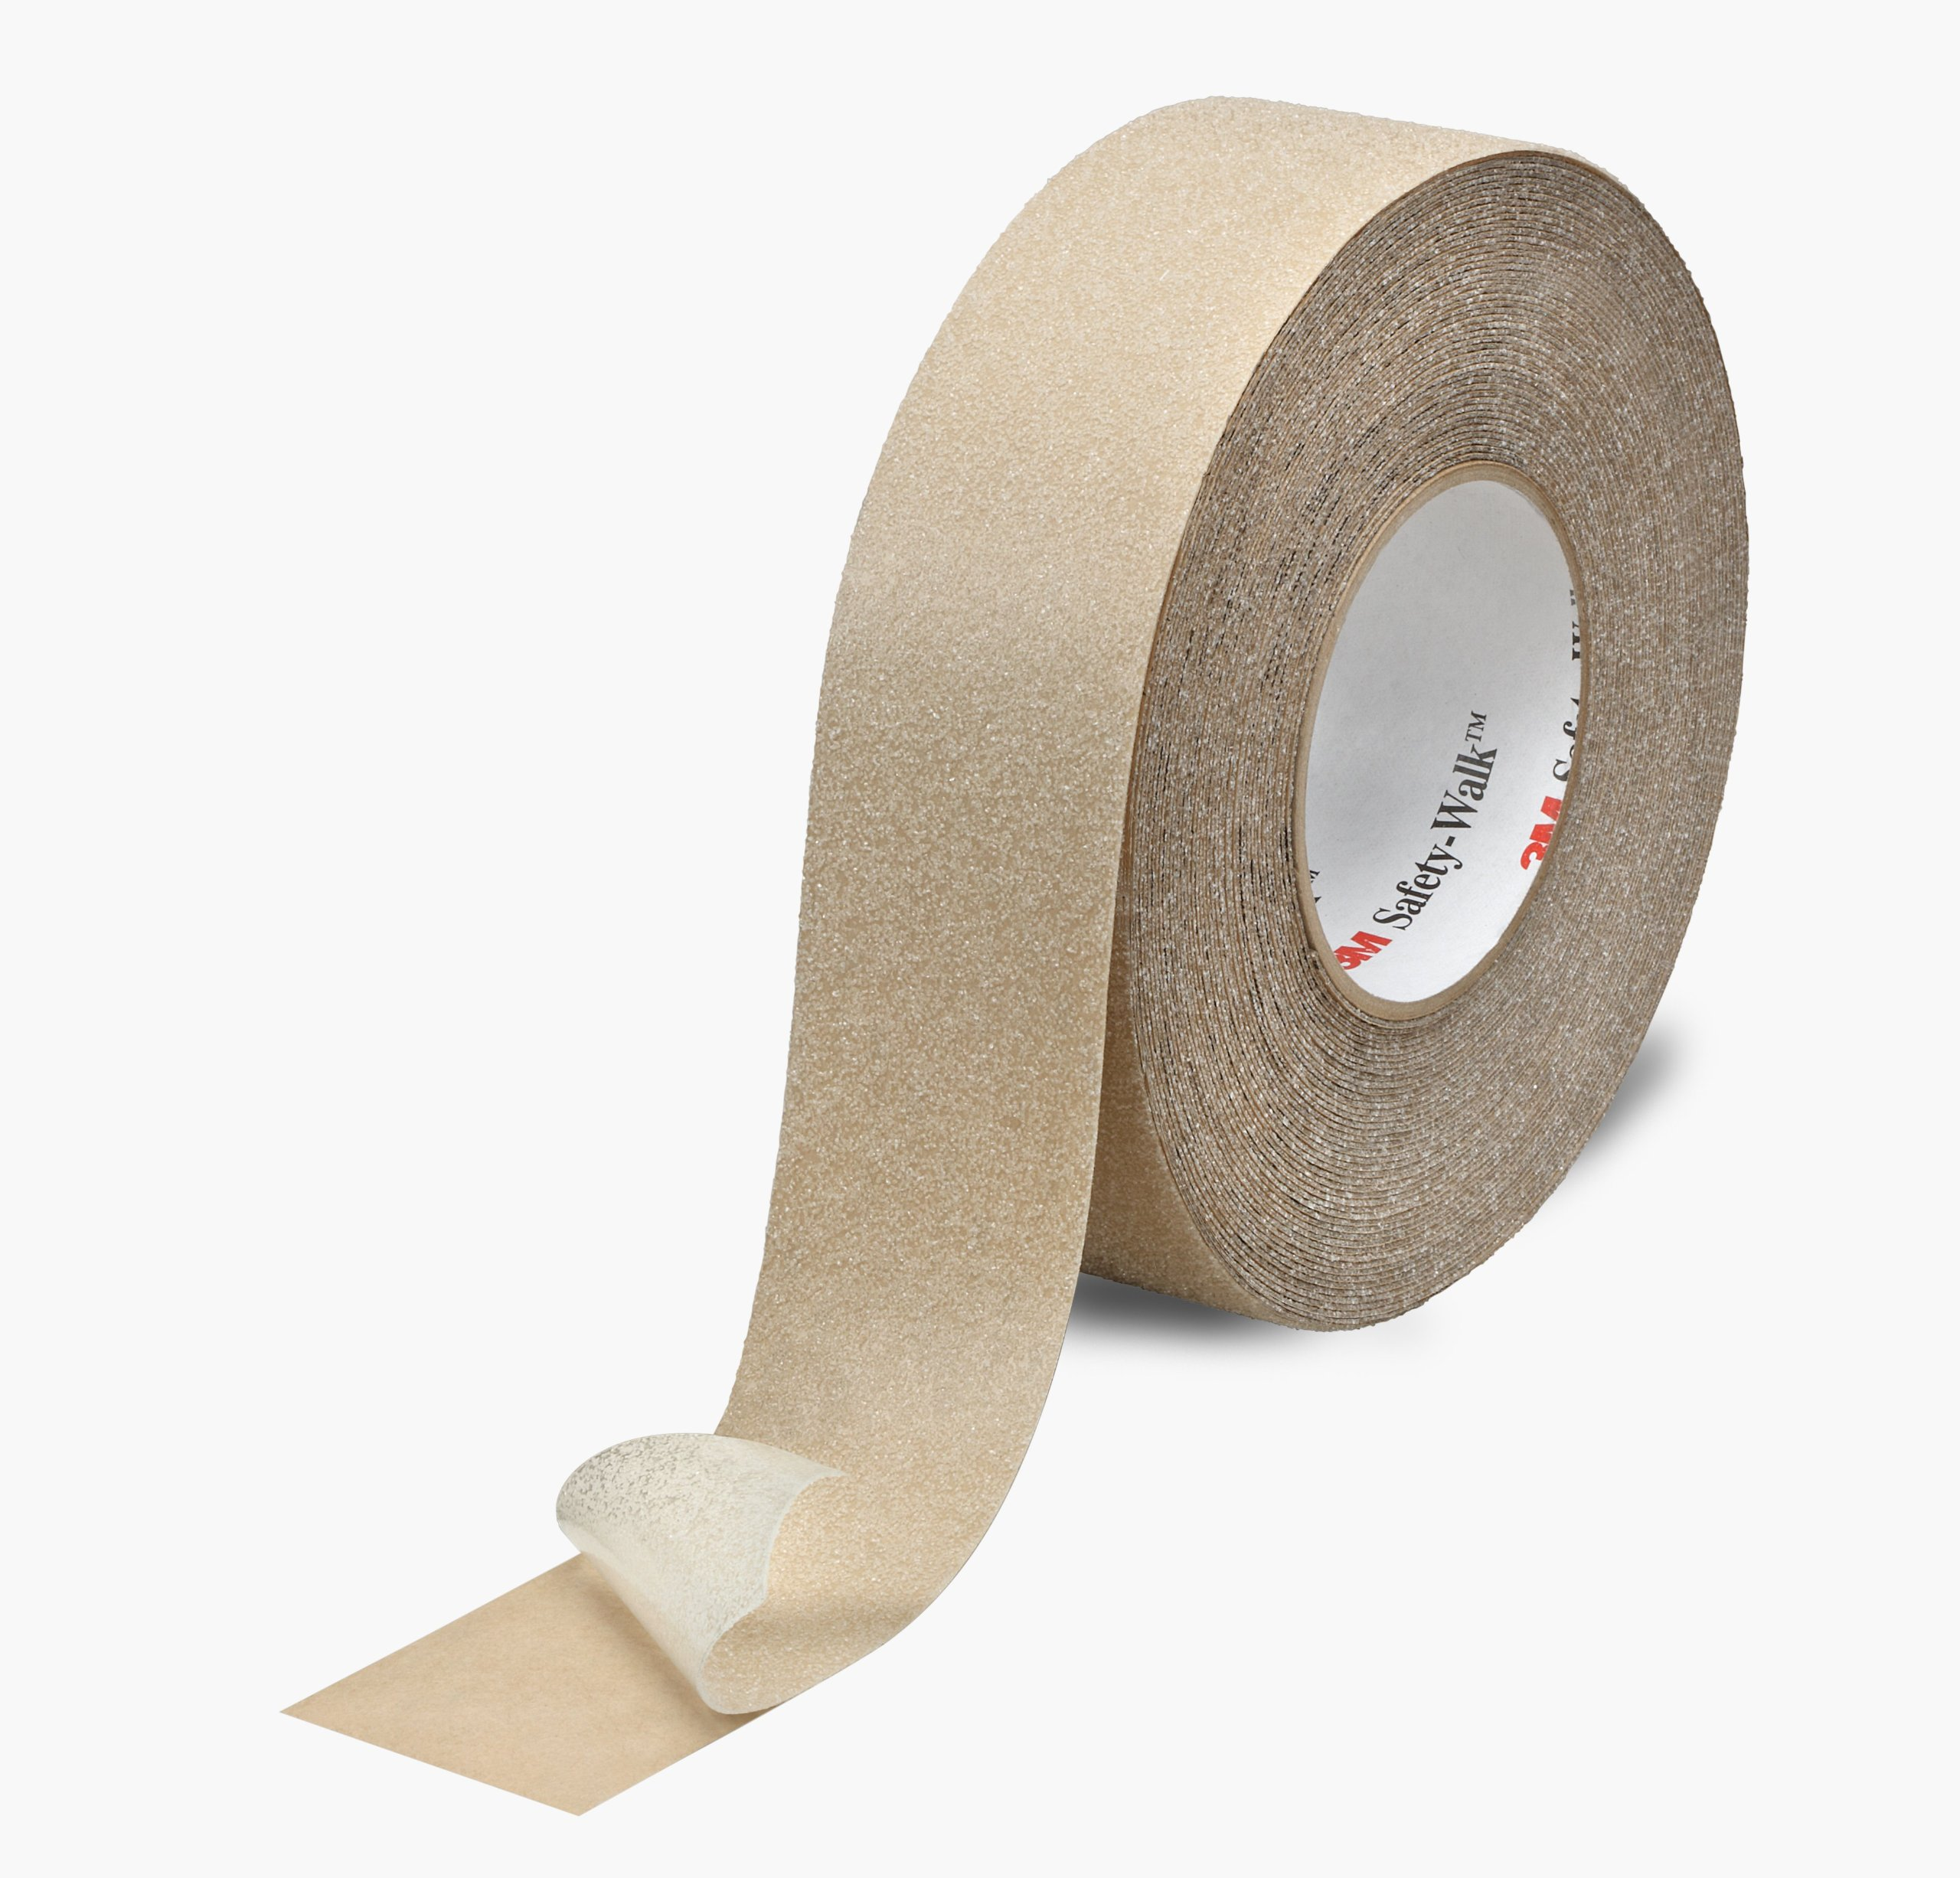 3M Safety-Walk Slip-Resistant General Purpose Tapes and Treads 620, Clear, 4'' Width, 60' Length (Pack of 1 Roll)